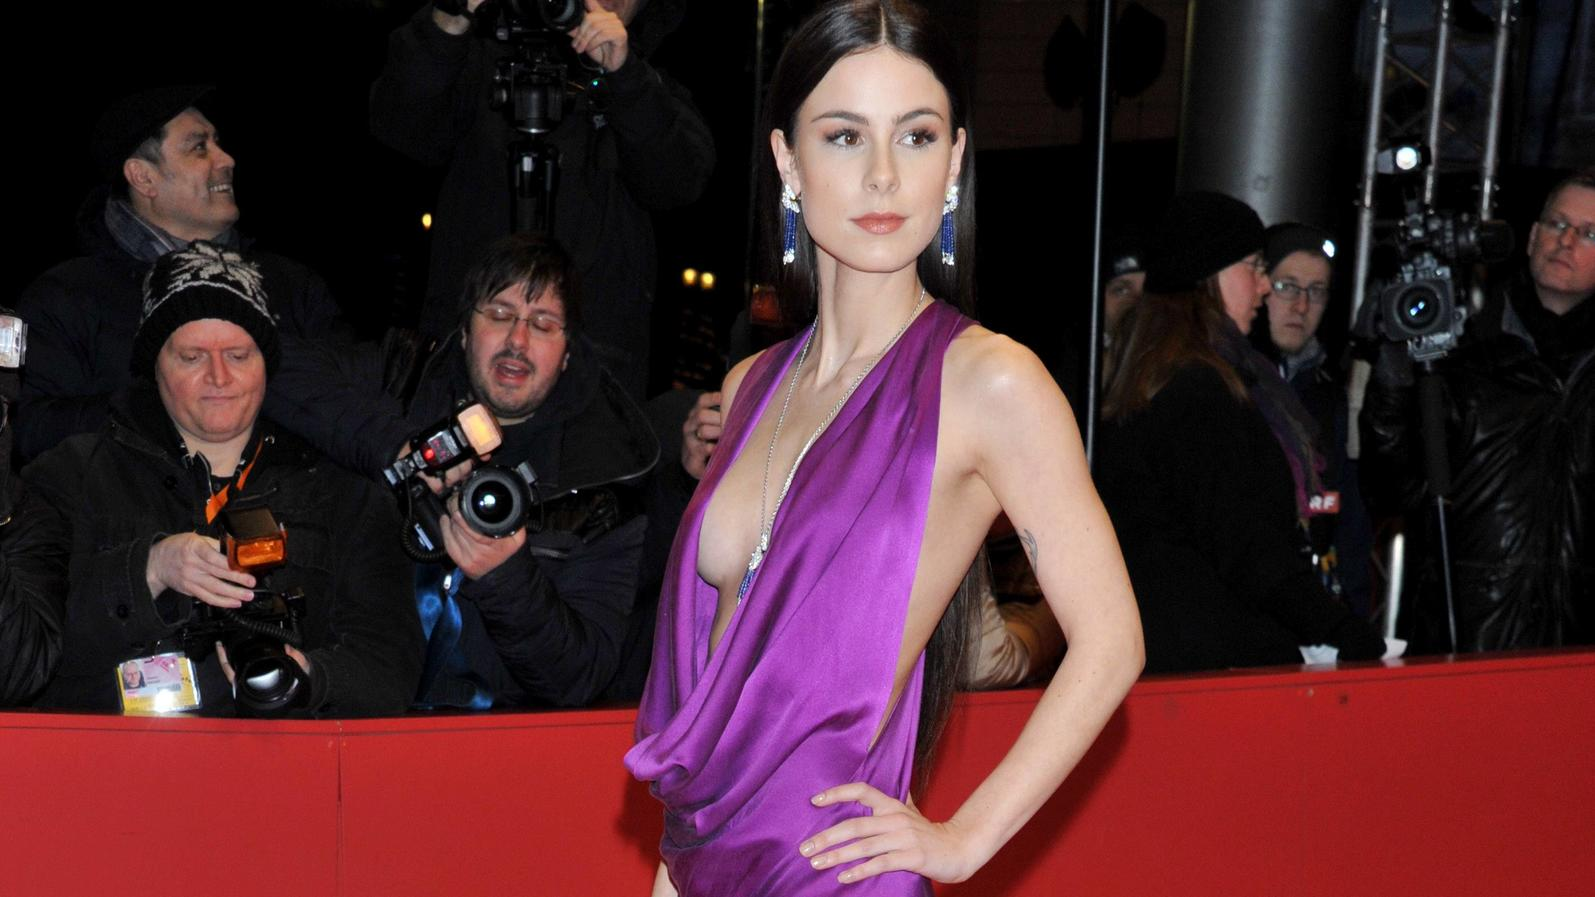 68th Berlin International Film Festival. Festival Internazionale del Cinema di Berlino 2018. Red Carpet film 3 Days in Quiberon . Pictured: Lena Meyer-Landrut PUBLICATIONxINxGERxSUIxAUTxONLY Copyright: xPoolxRomax2x/xIPAx/xPoolxRomax2x